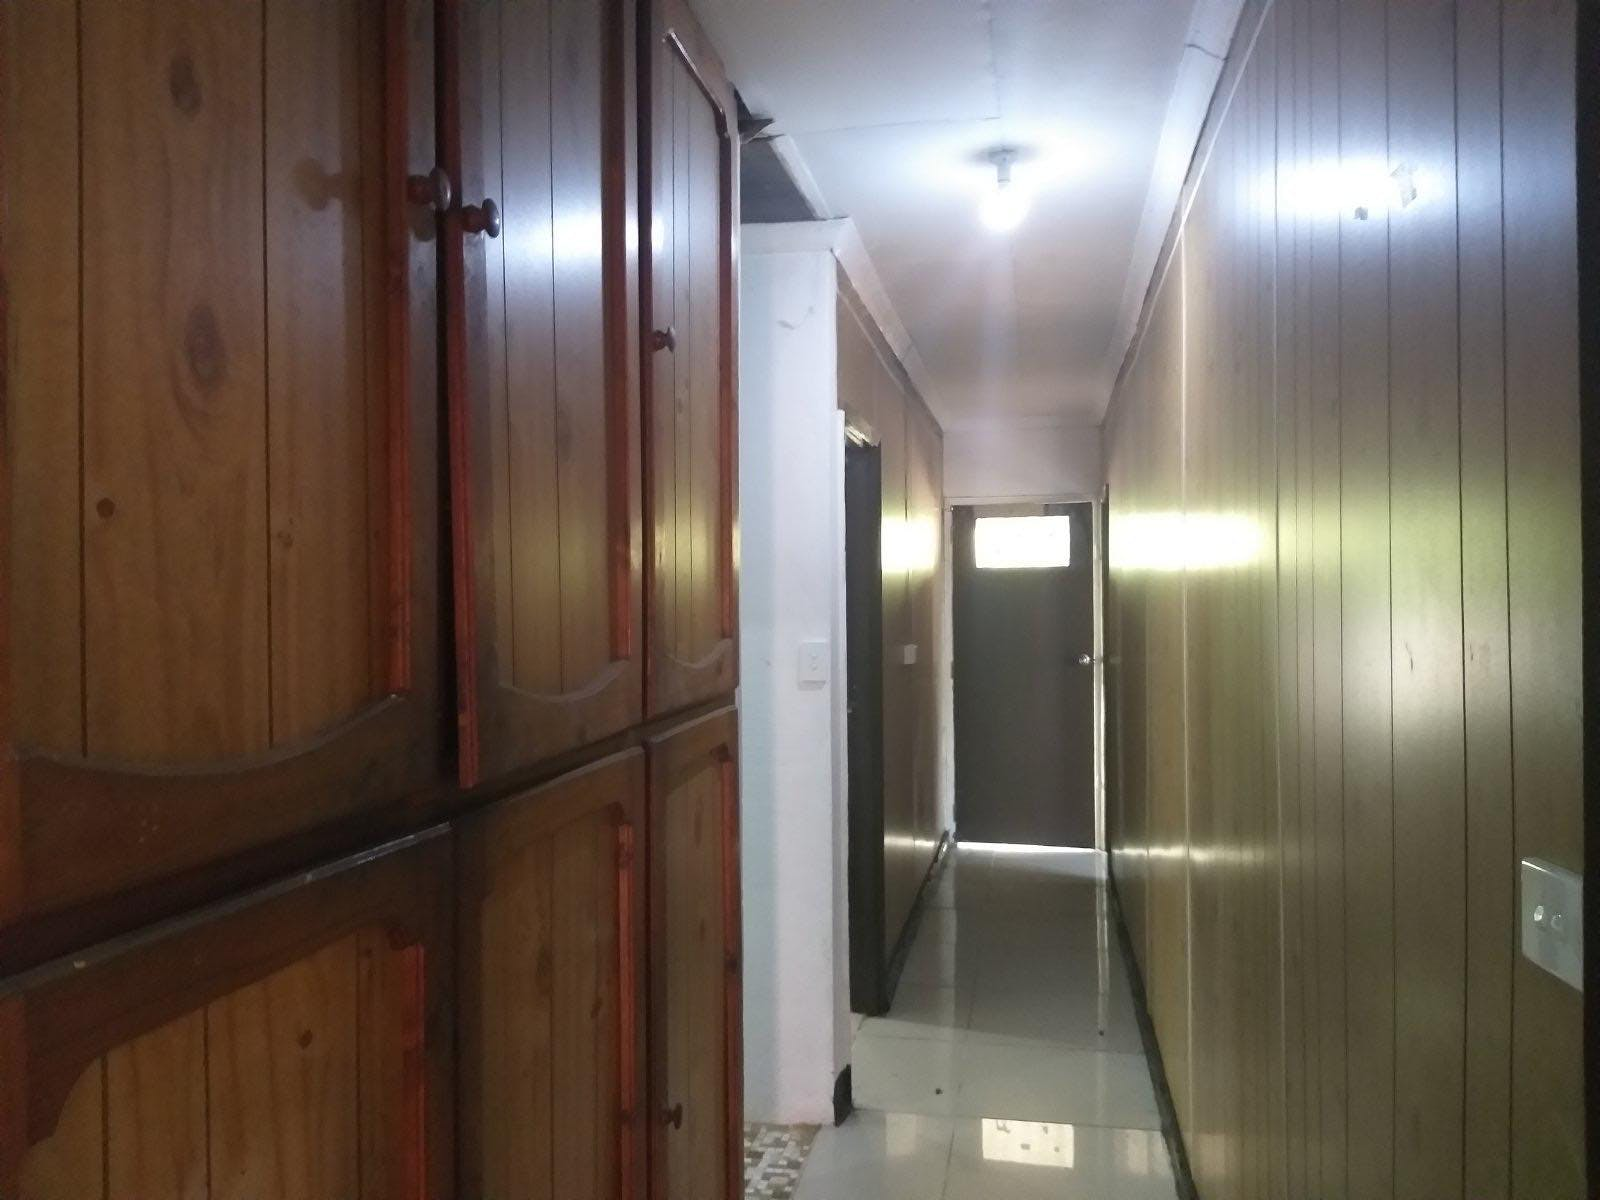 4 bedrooms Freehold property - For Sale by Tender